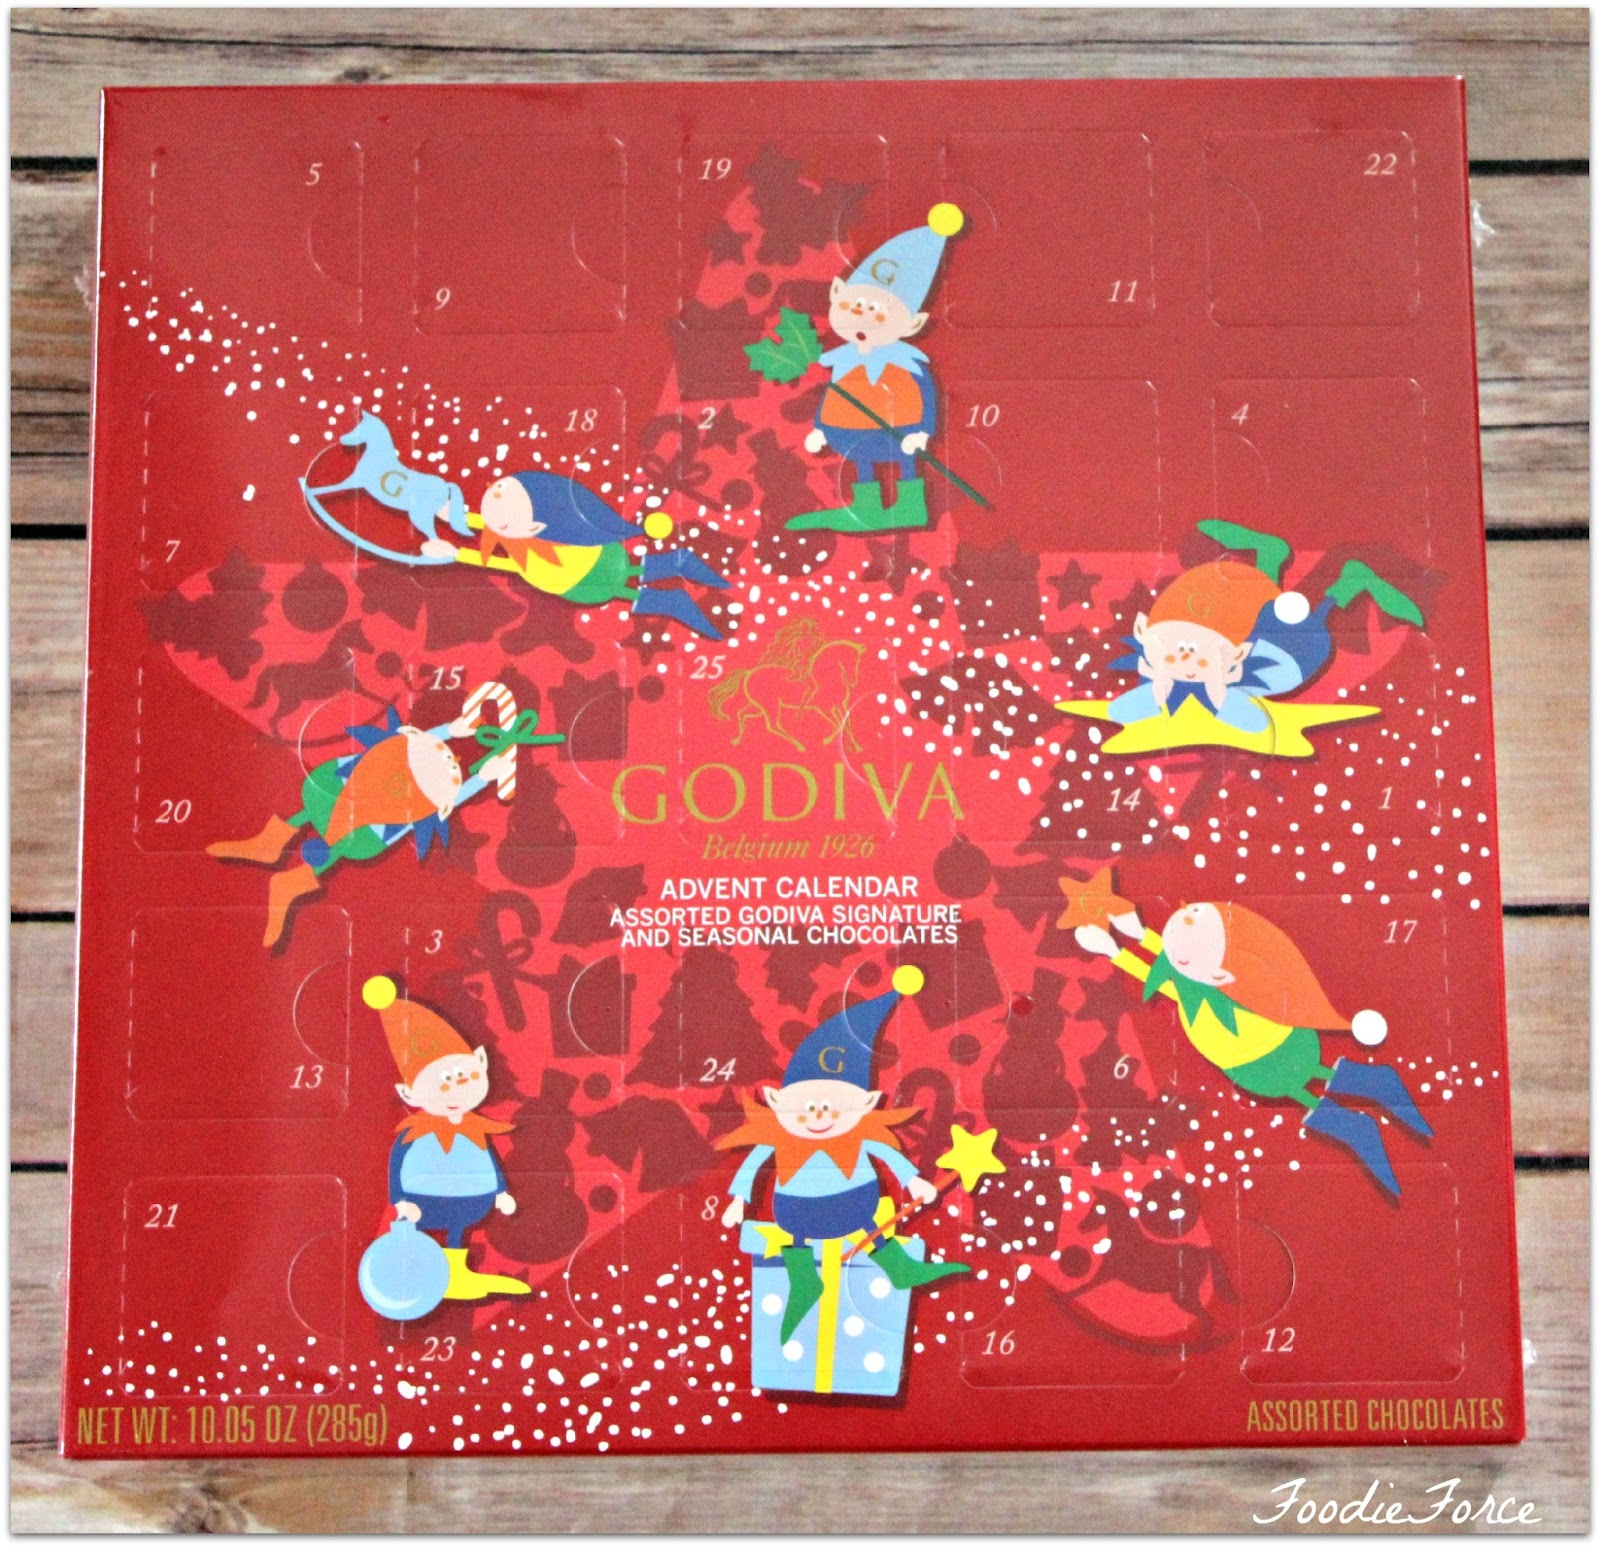 Foodie Force Top Christmas Advent Calendars 2015